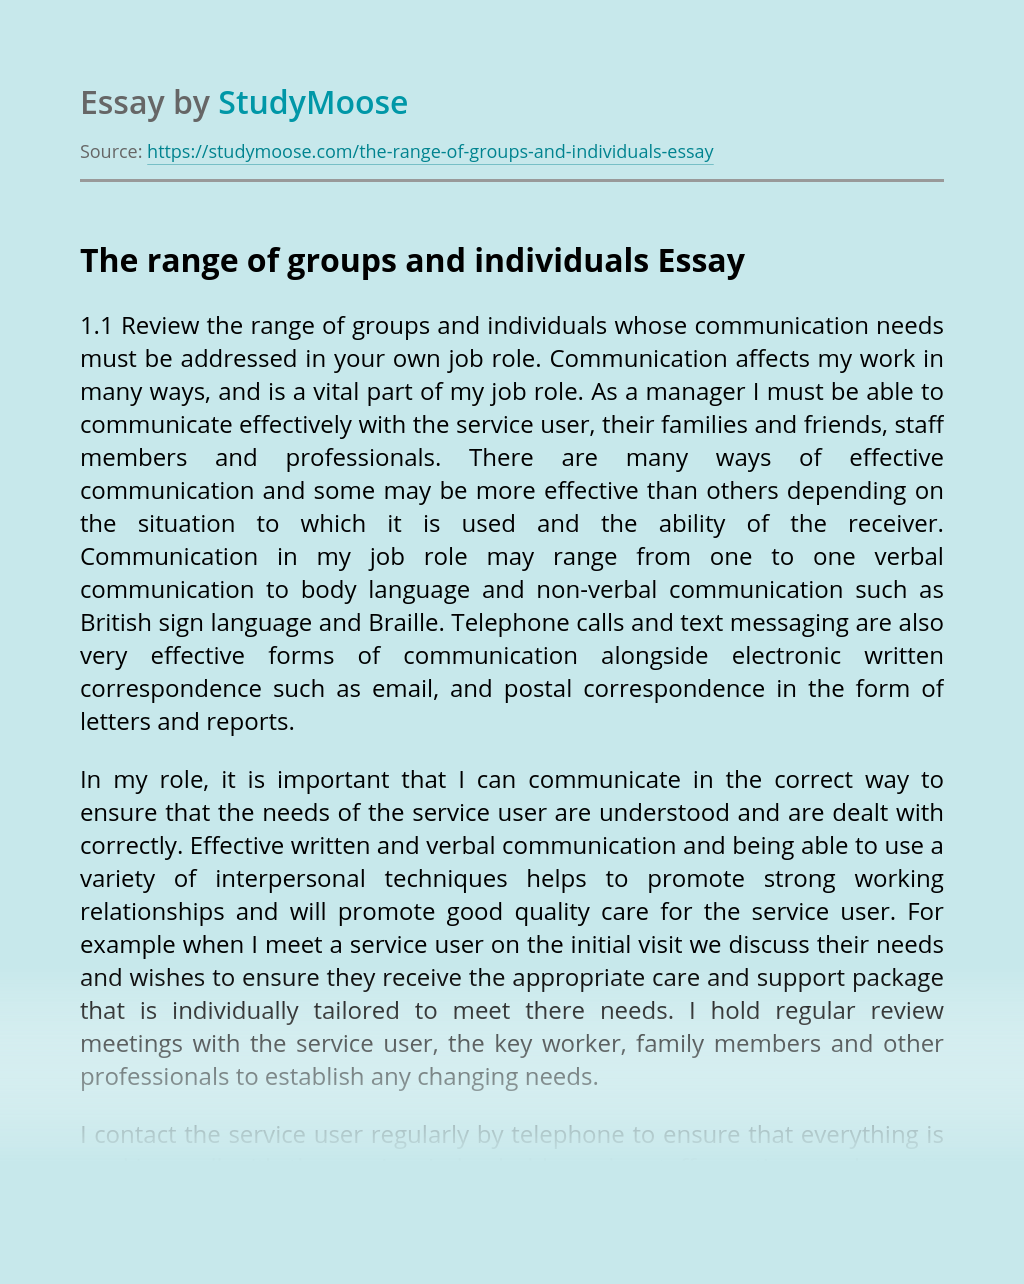 The range of groups and individuals